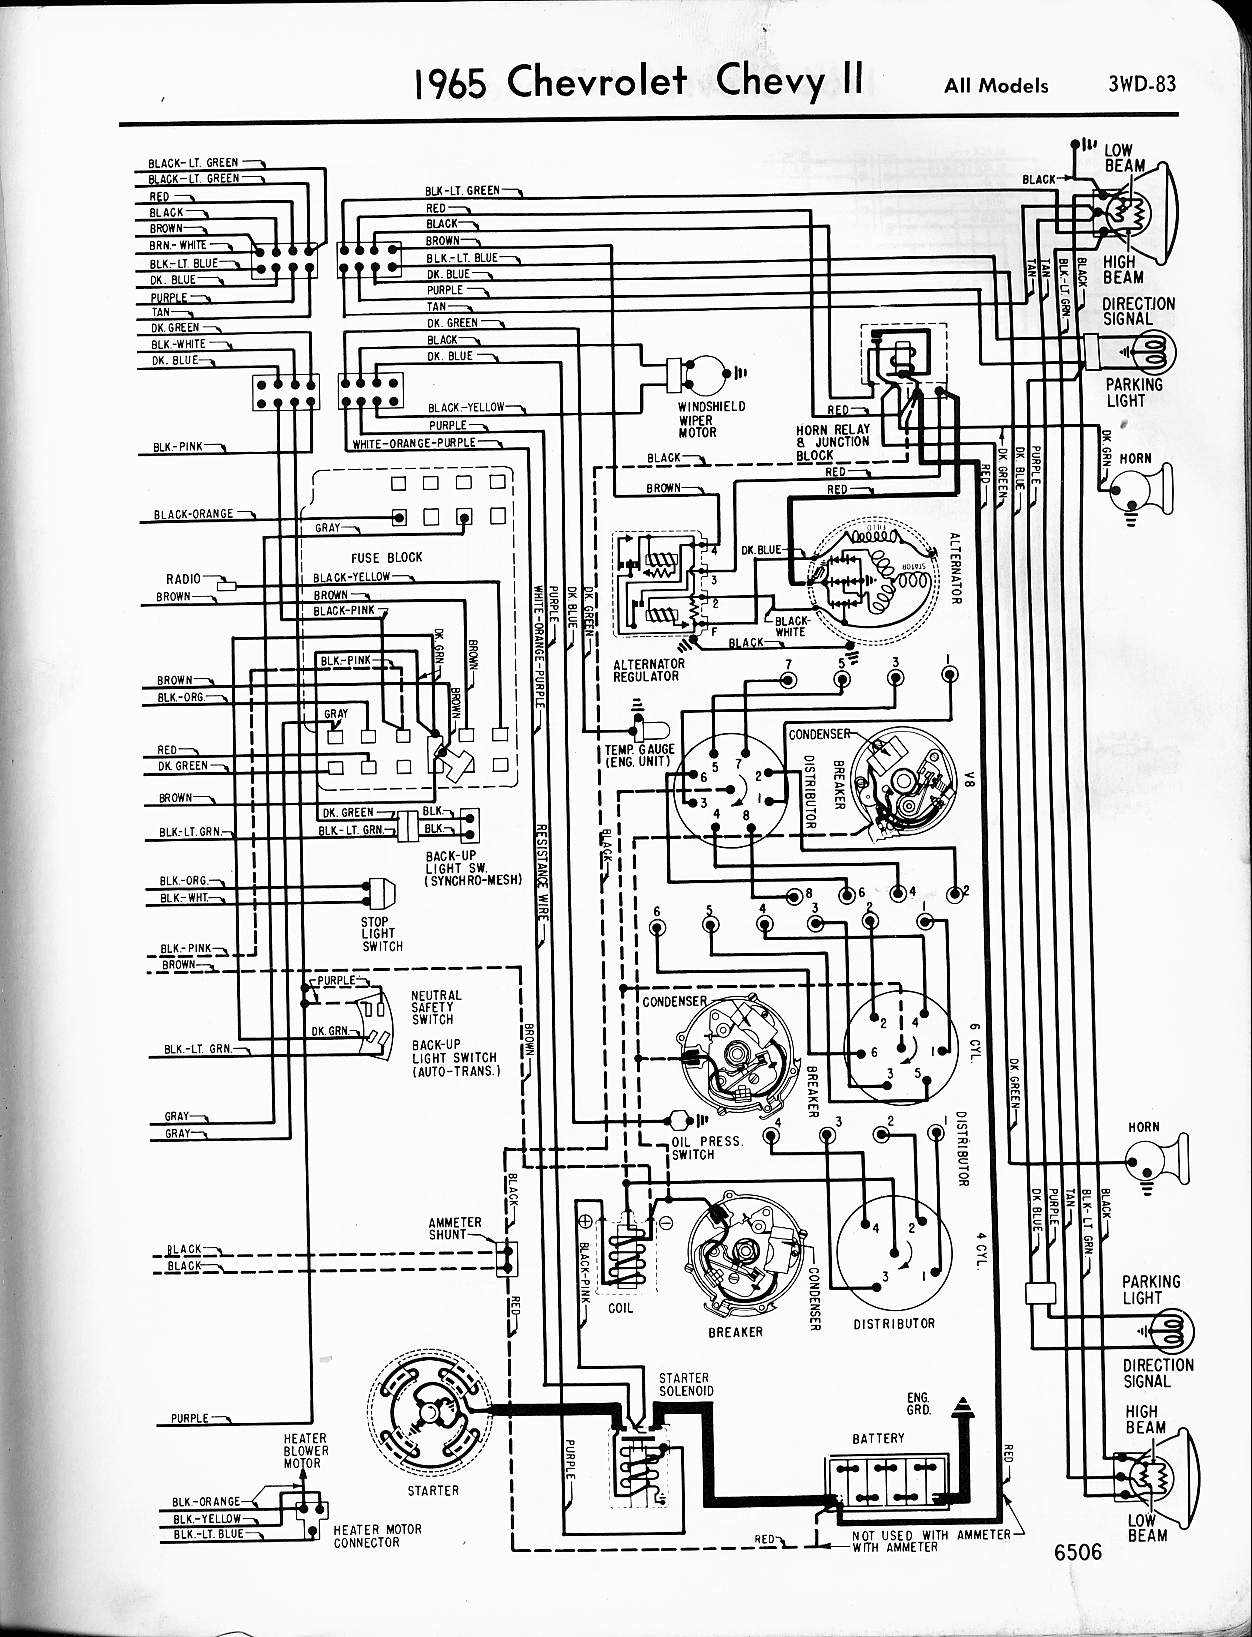 57 65 chevy wiring diagrams rh oldcarmanualproject com 1978 Chevy Truck Wiring Diagram Chevy Wiring Harness Diagram